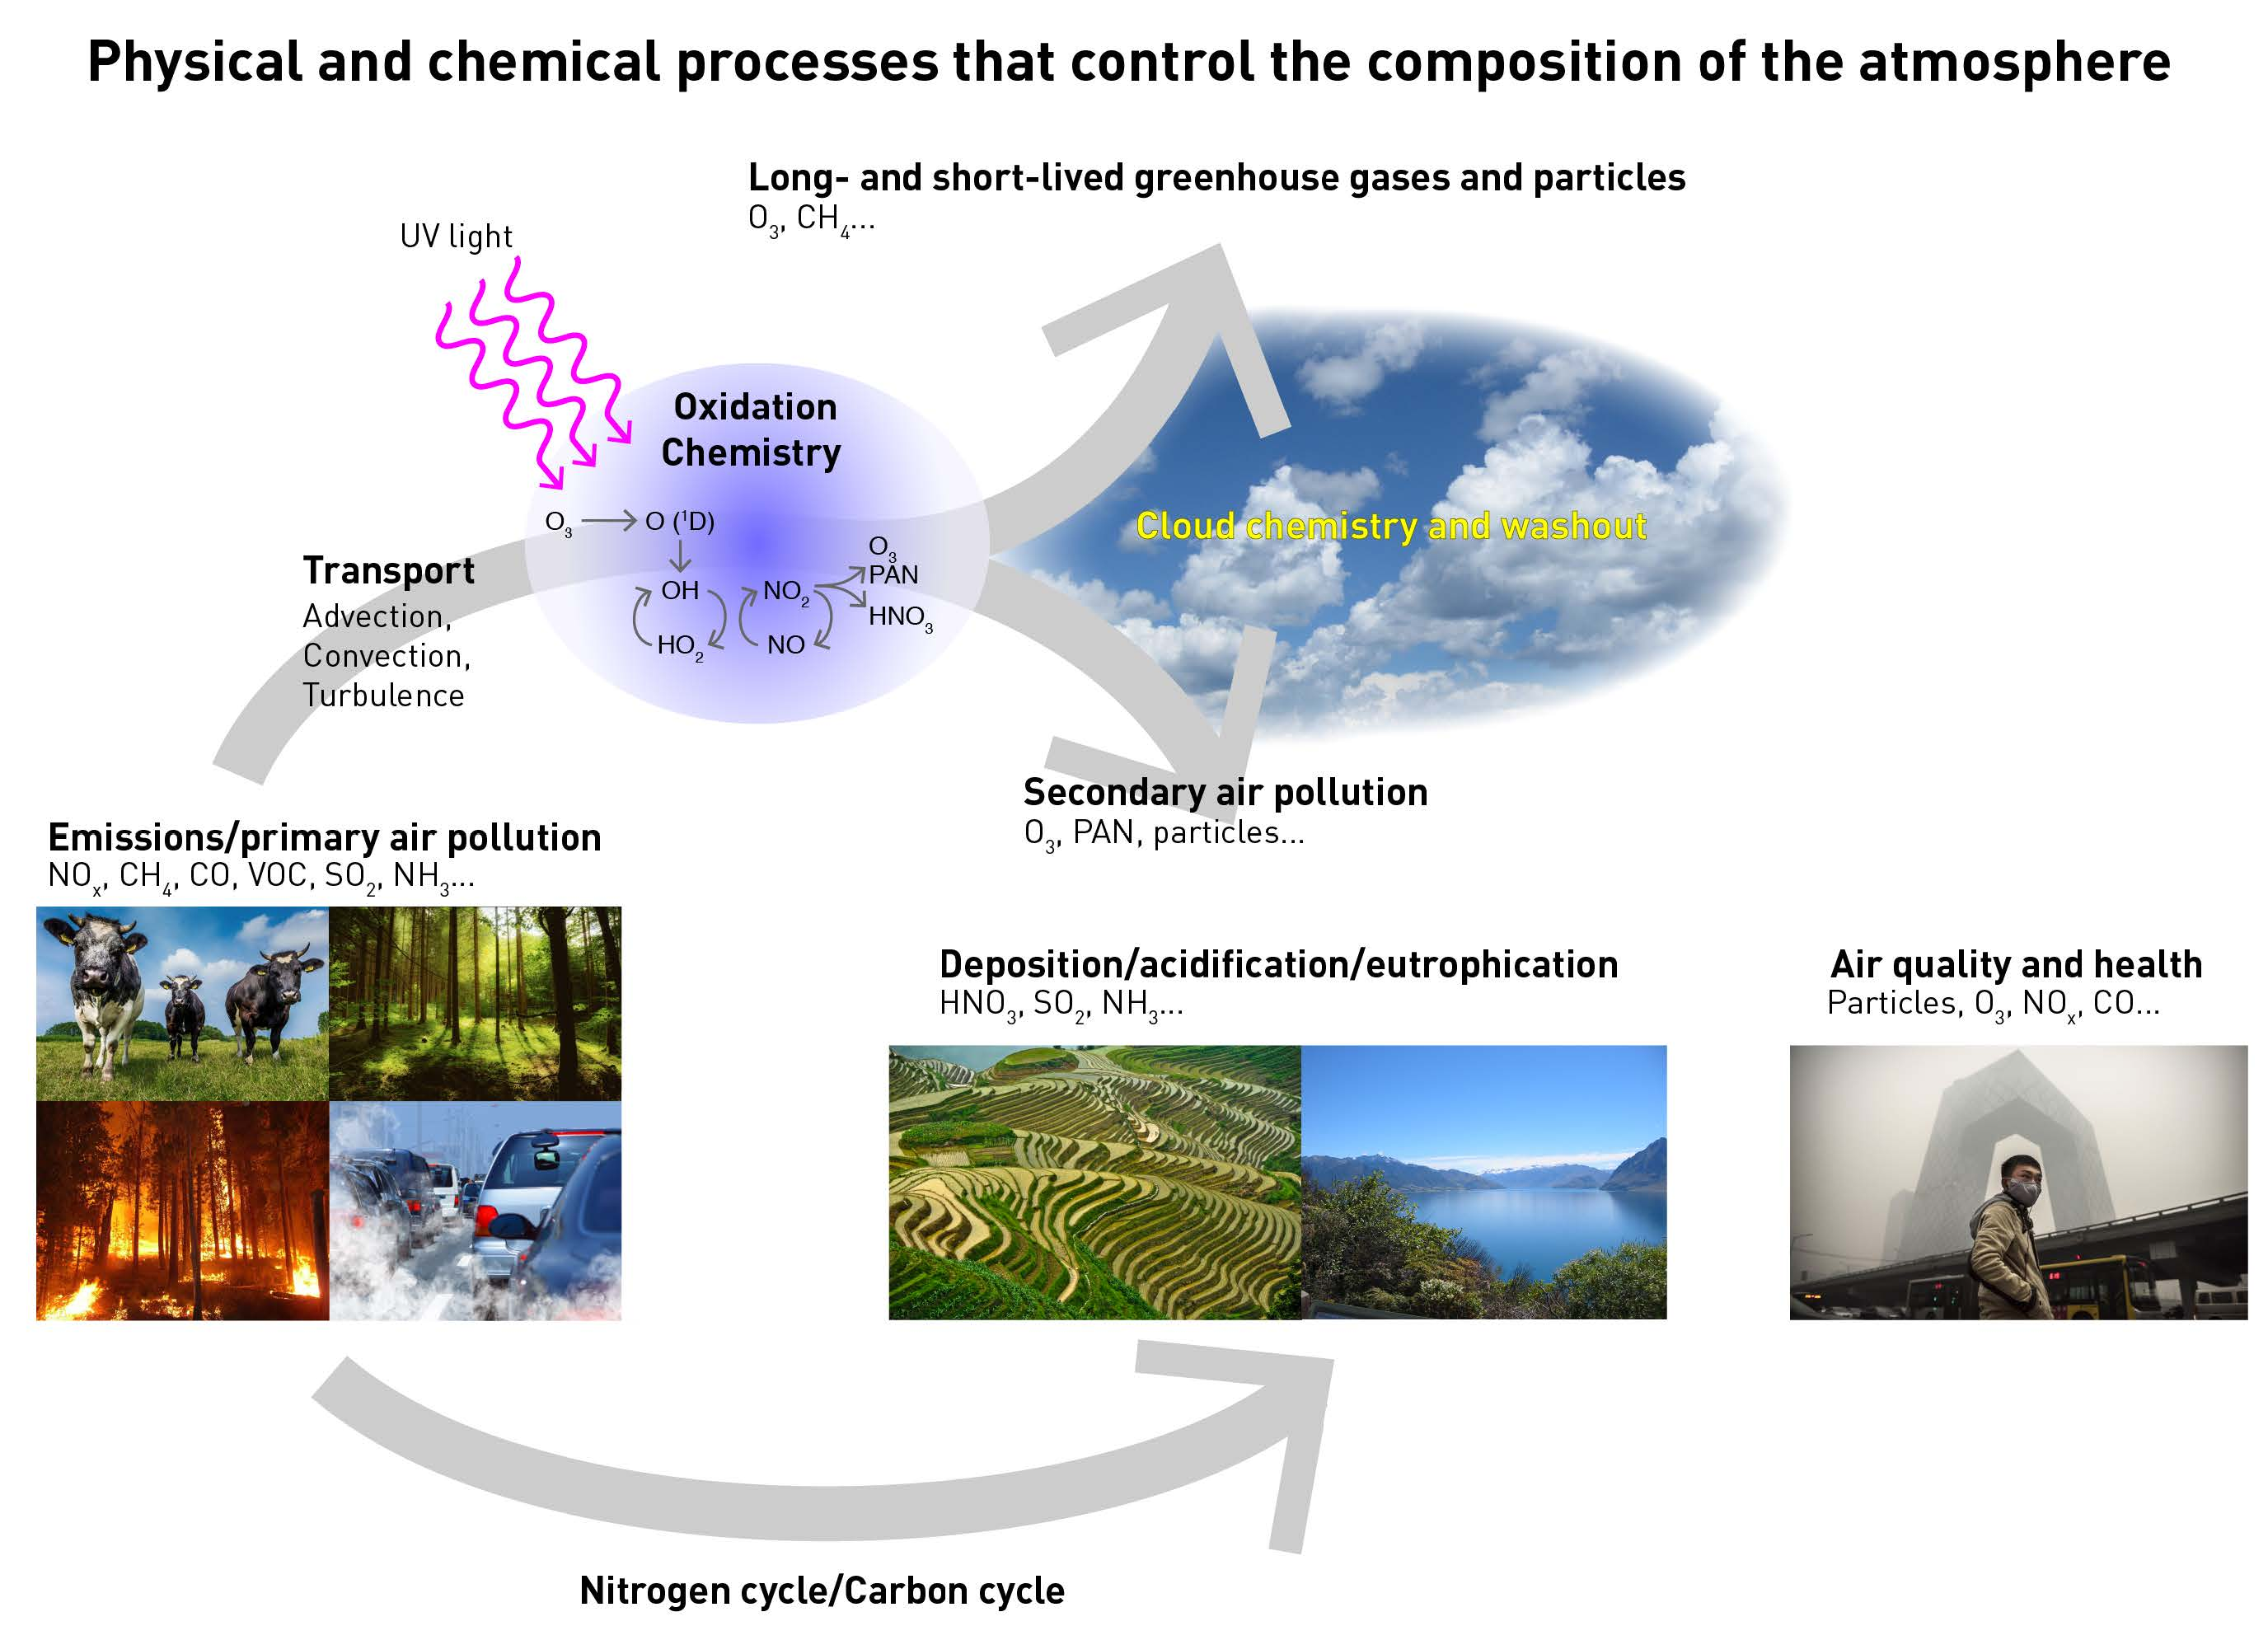 Physical and chemical processes that control the composition of the atmosphere on different scales